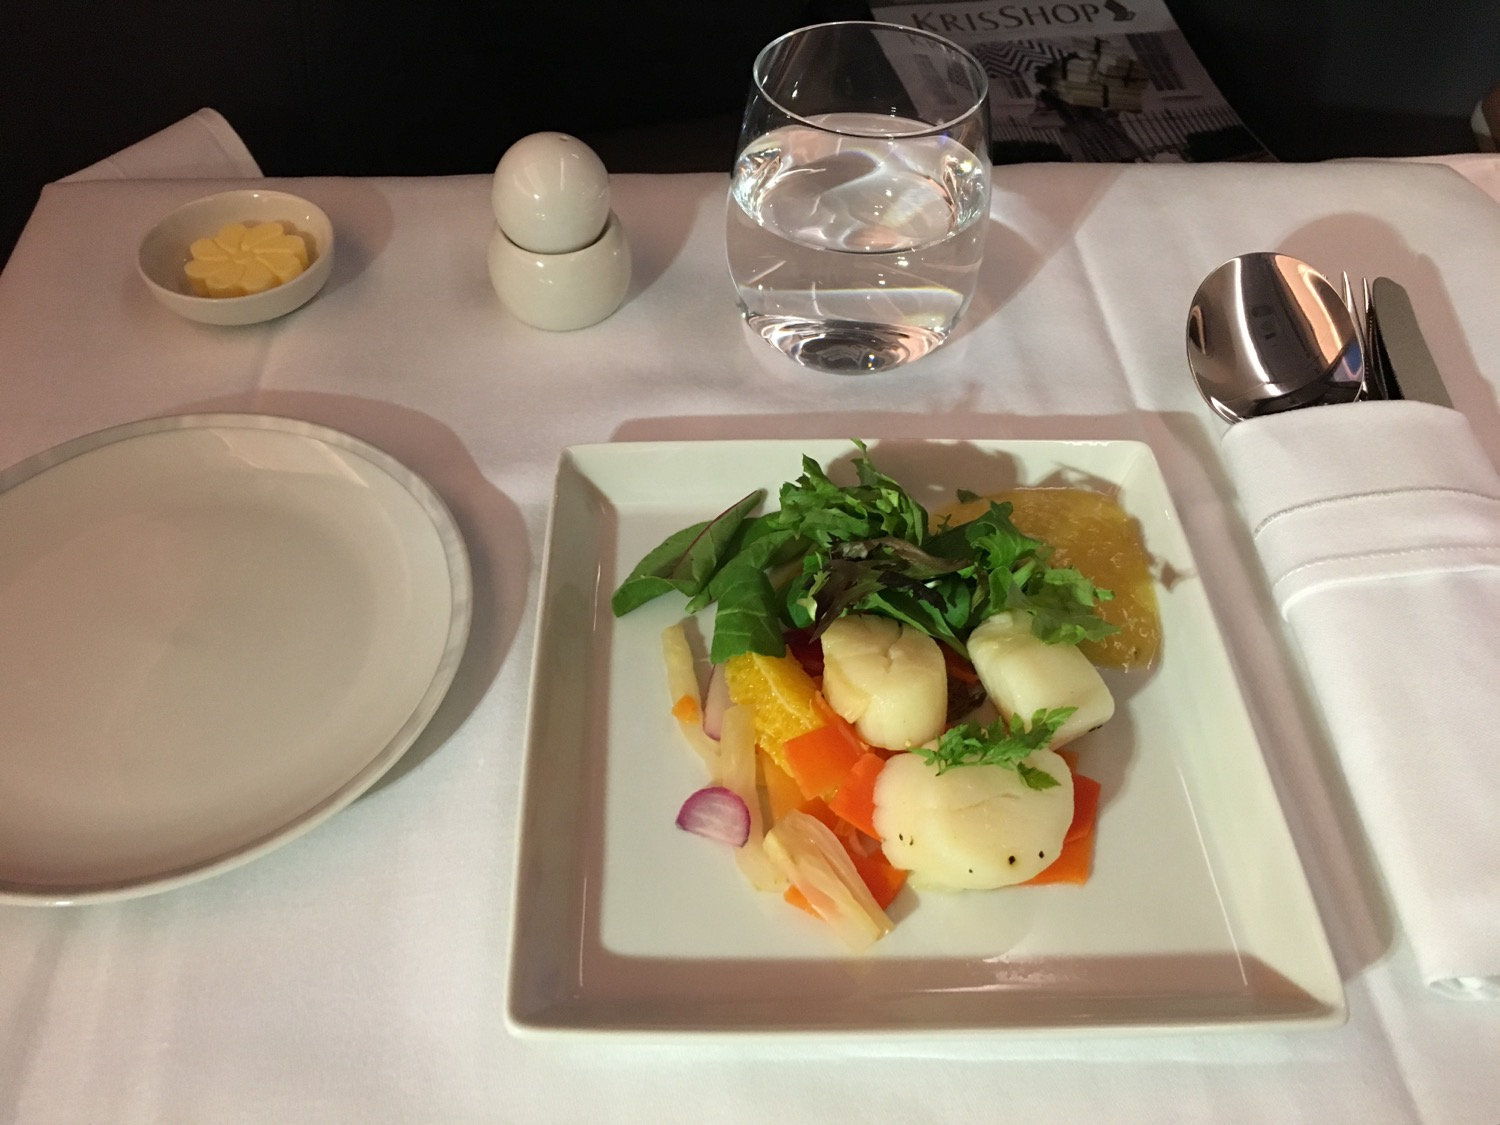 Singapore Airlines A350 Business Class Supper - 1